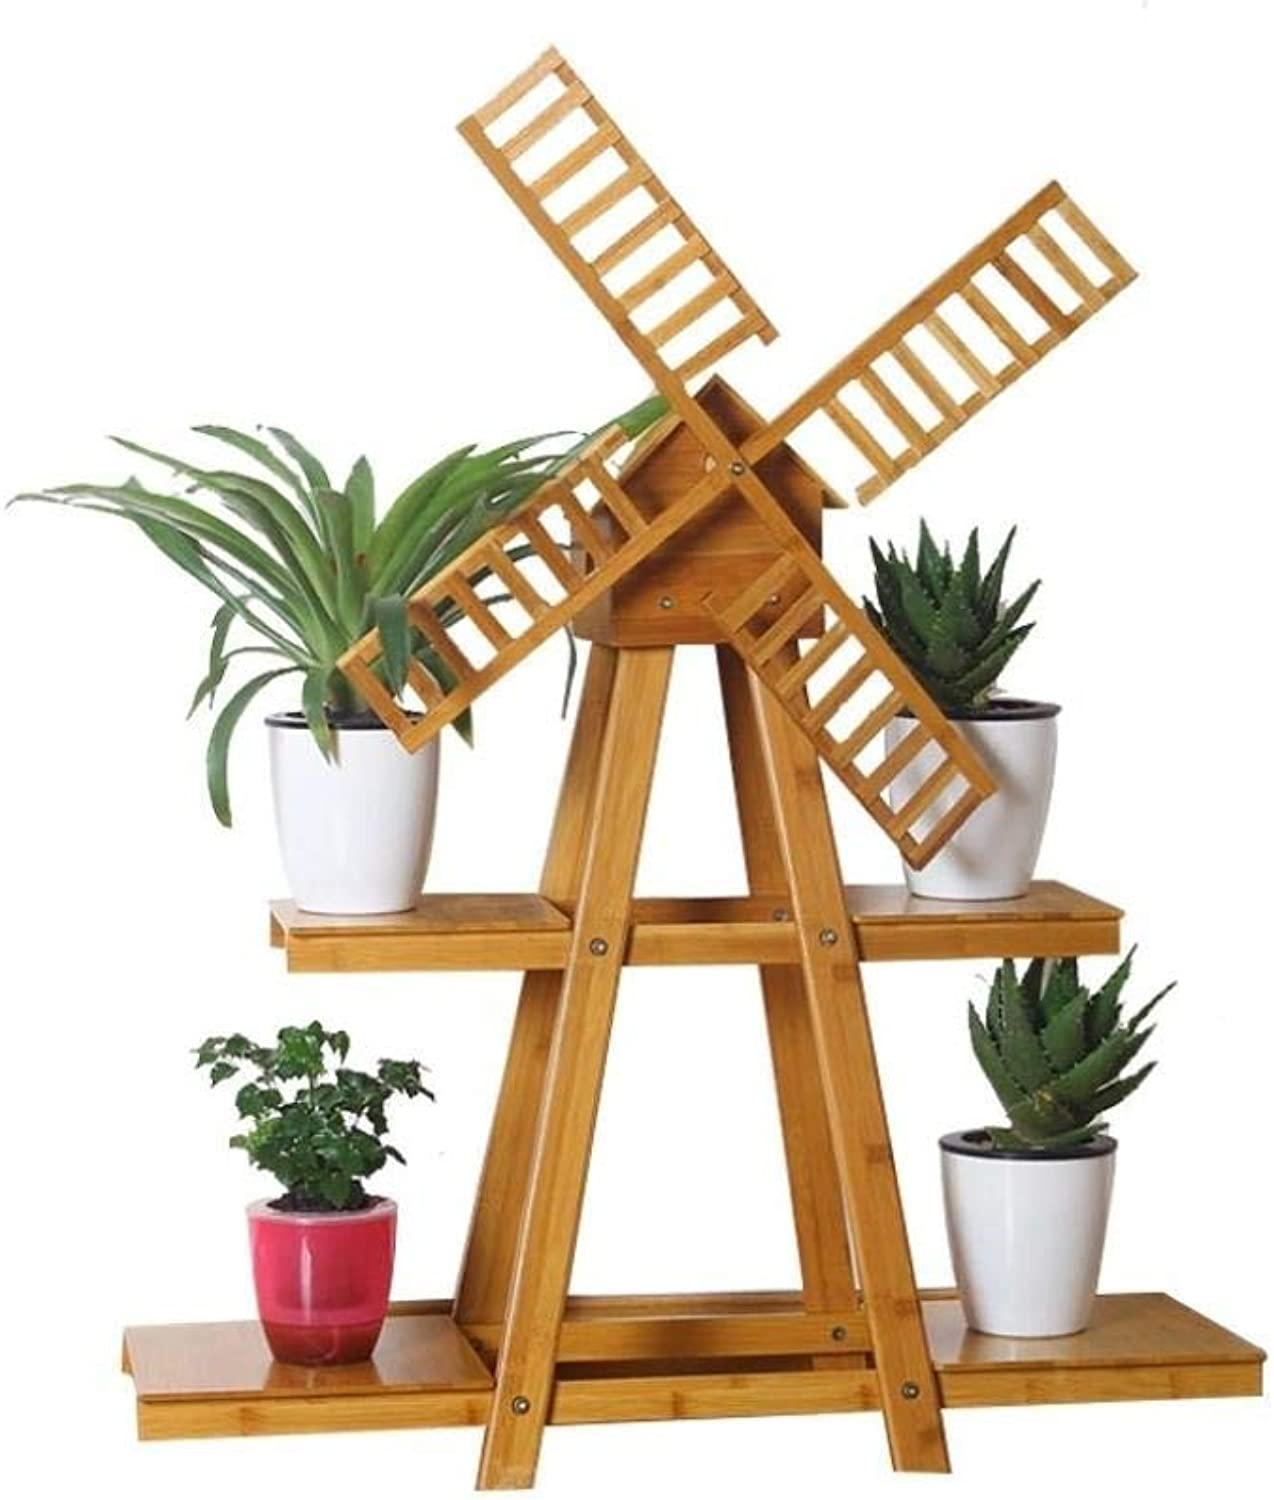 Flower Stand - Bamboo and Rattan Windmill Floor Plant Flower Pot Display Stand, Multi-Layer Balcony Living Room Multi-Function Rack, Storage Rack (Size   2 Tier)